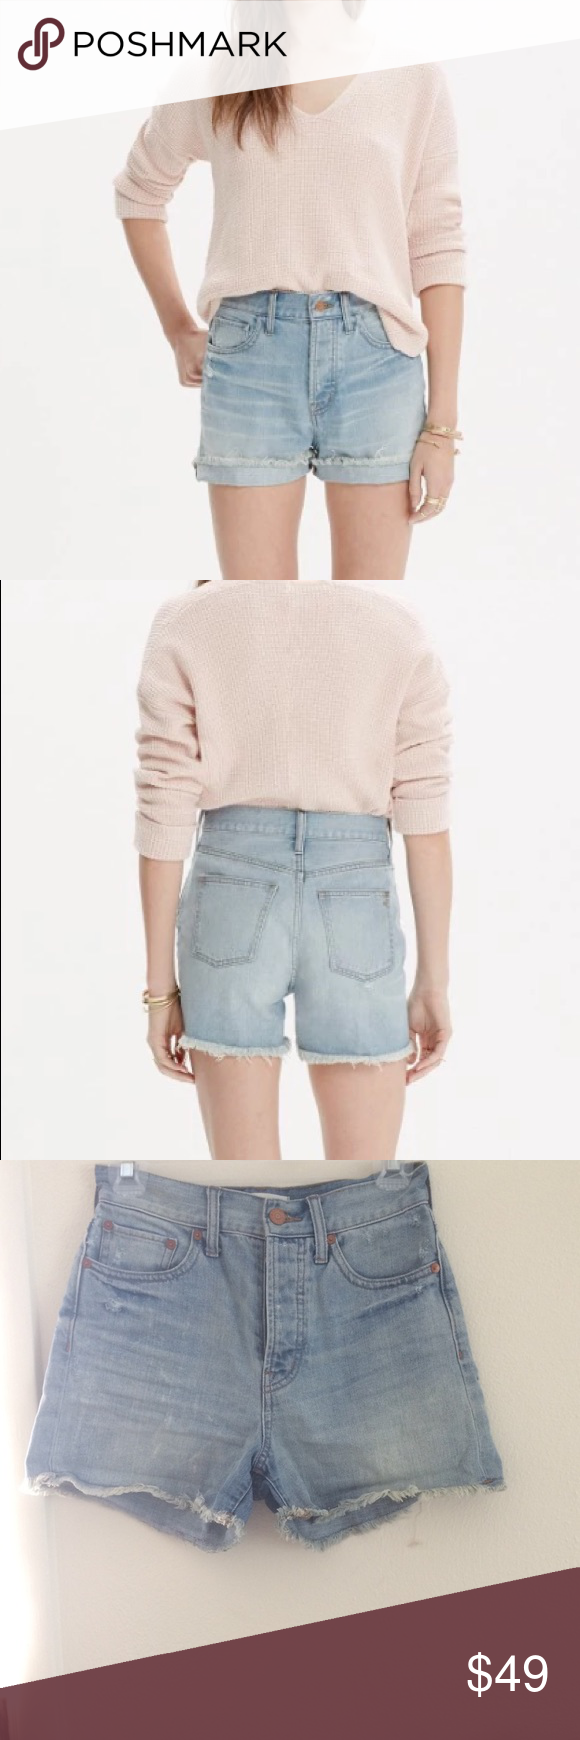 496626a195 Madewell the perfect summer short We remade our summer jeans as a  just-right pair